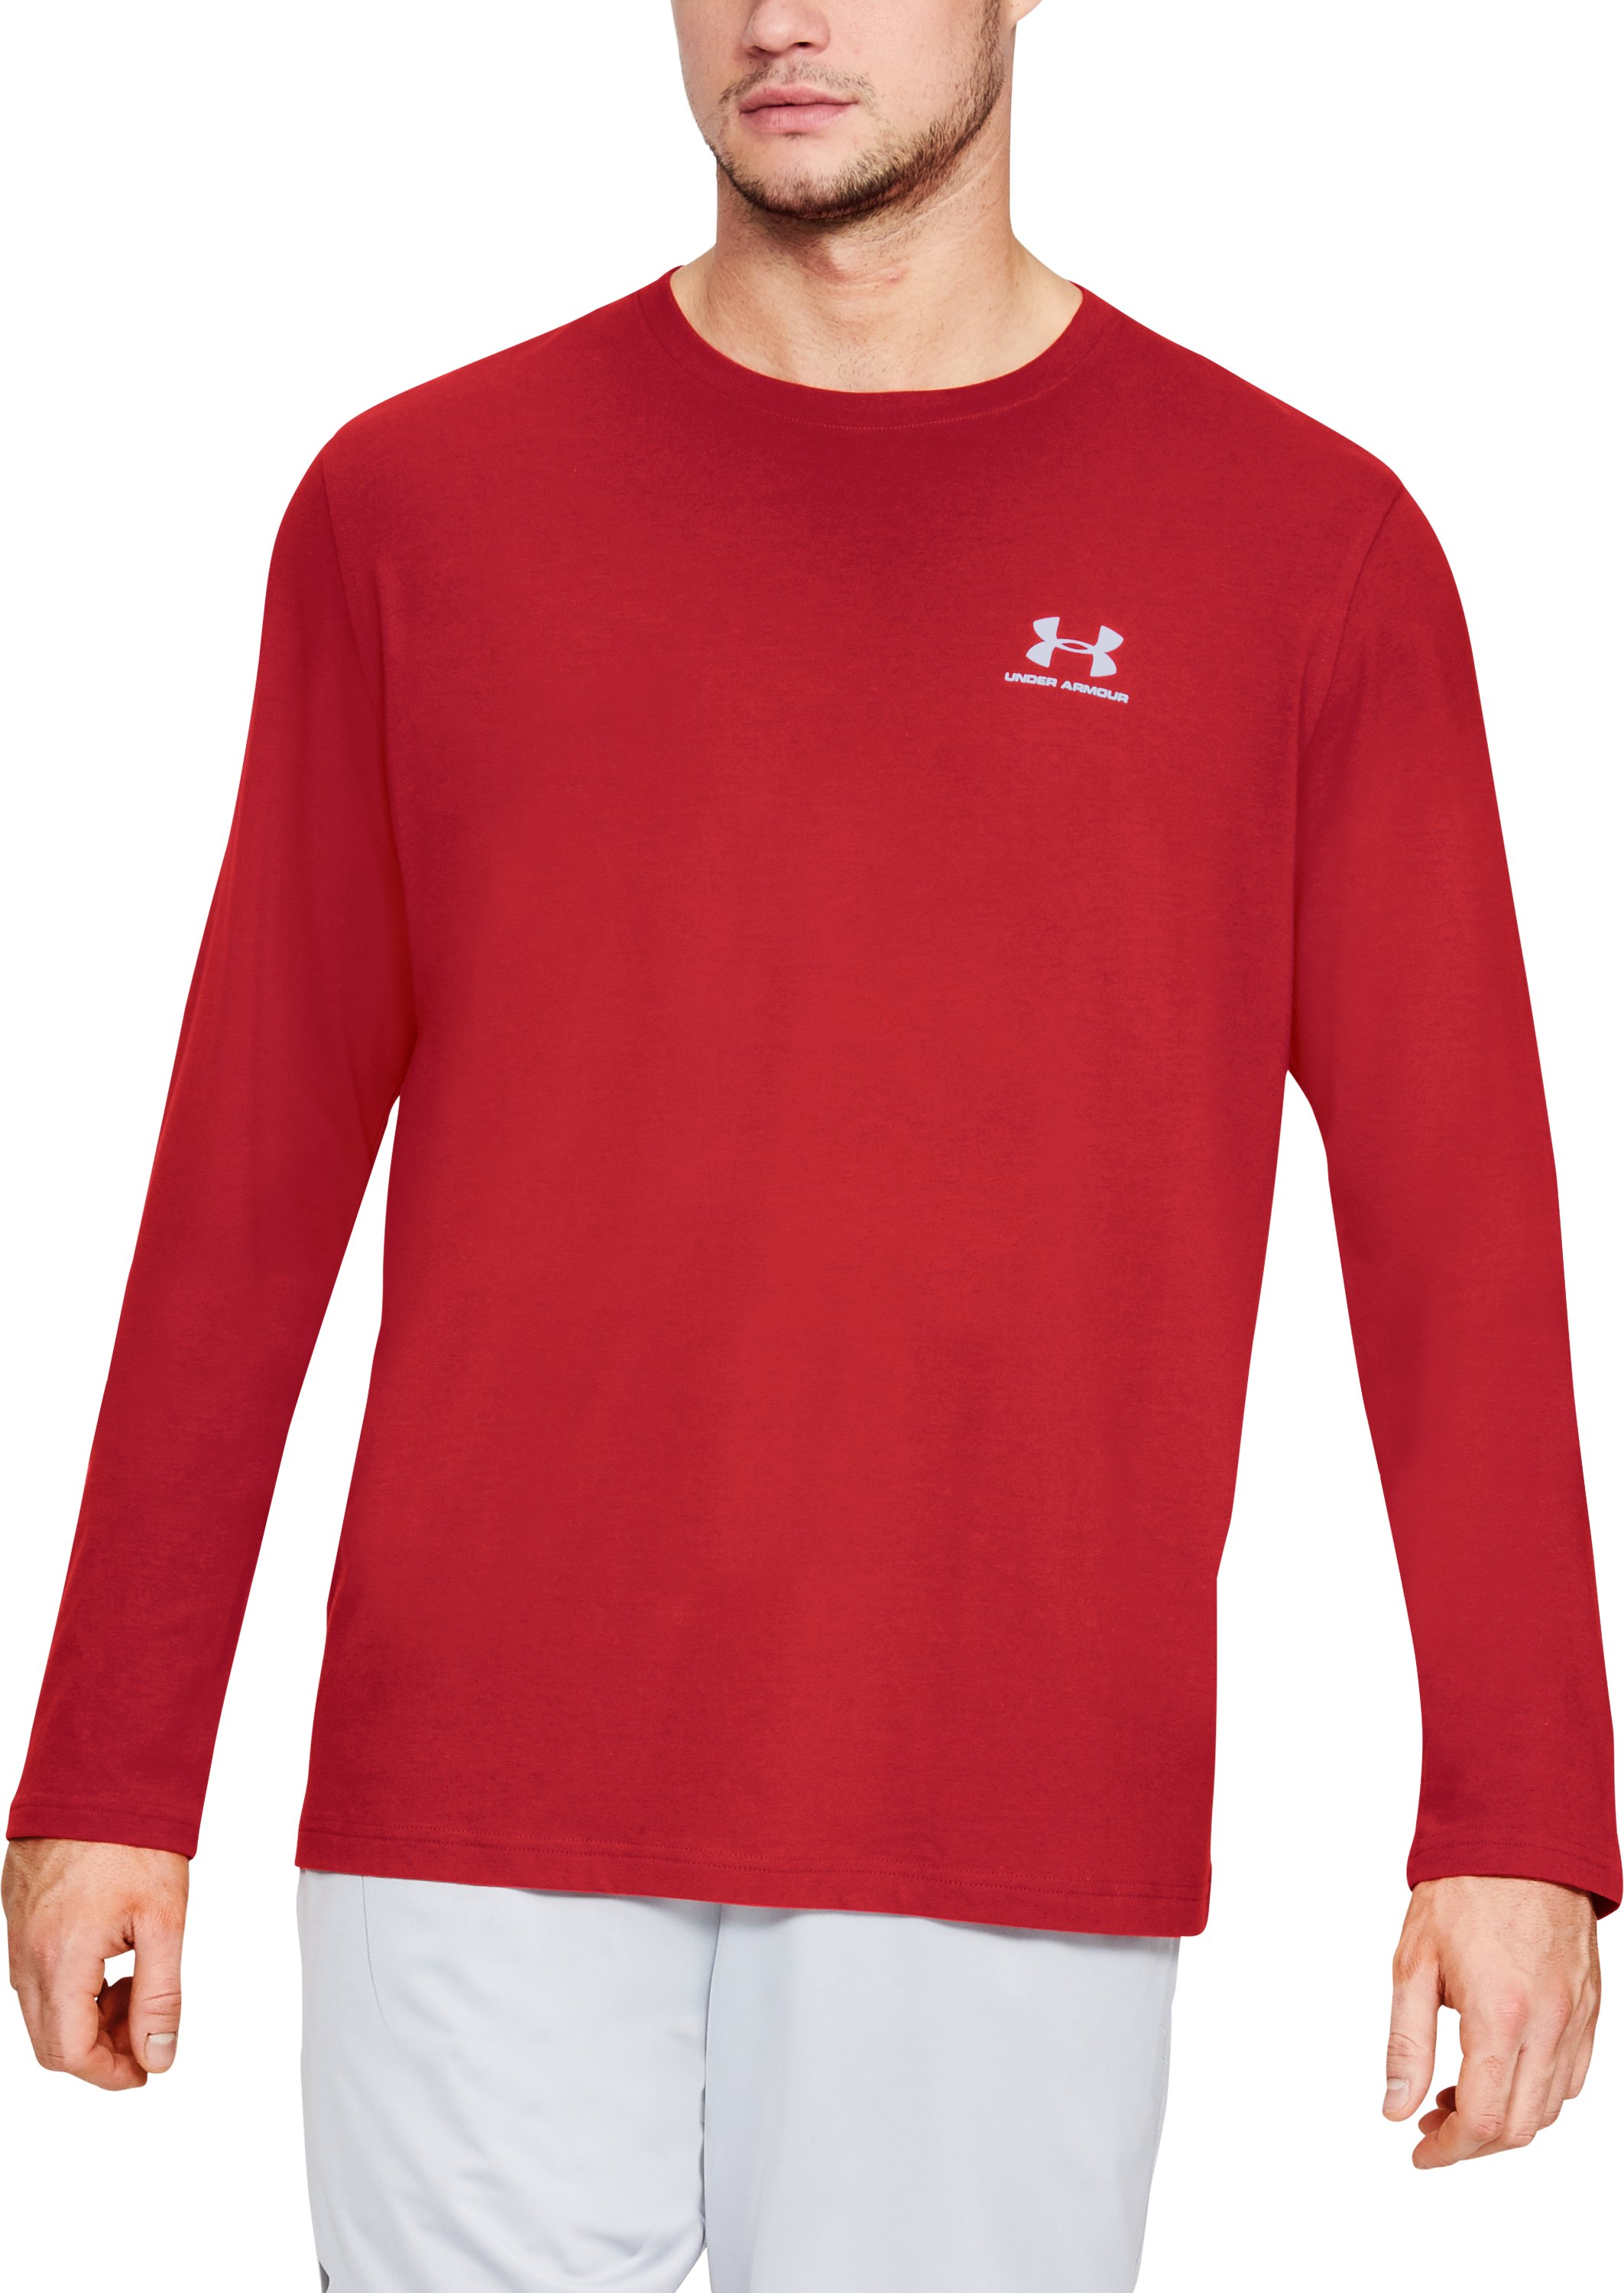 red long sleeve t-shirt Men's UA Chest Logo Long Sleeve T-Shirt  That being said, its a good shirt....Great fabric and comfy but too loose for me....The sneaker runs a bit small but one I got the right size it was a very comfortable fit.